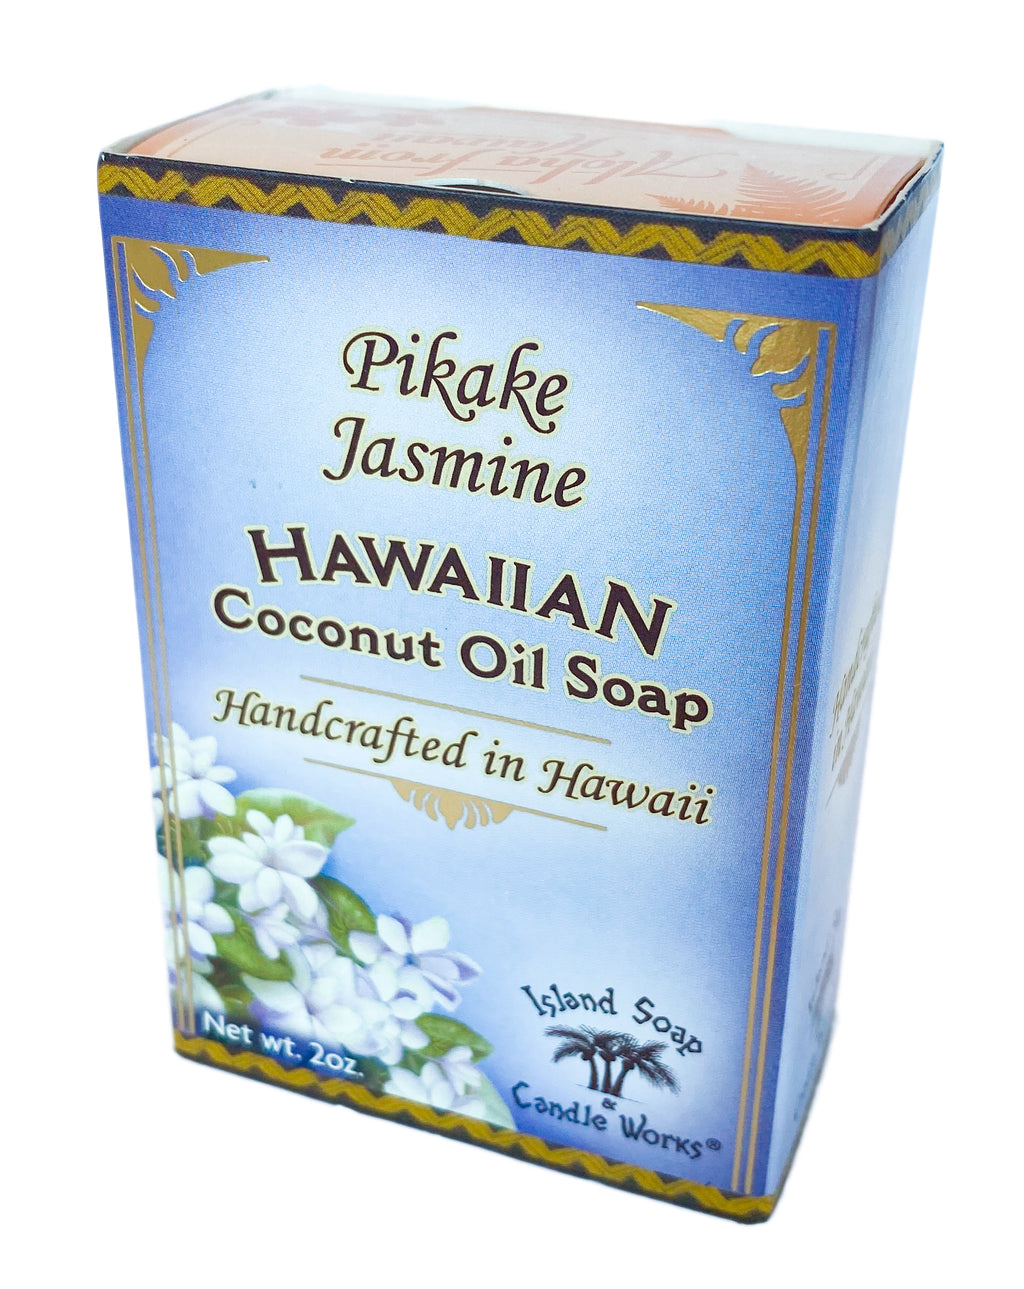 Pikake Jasmine - 2 oz. Coconut and Palm Oil Soap